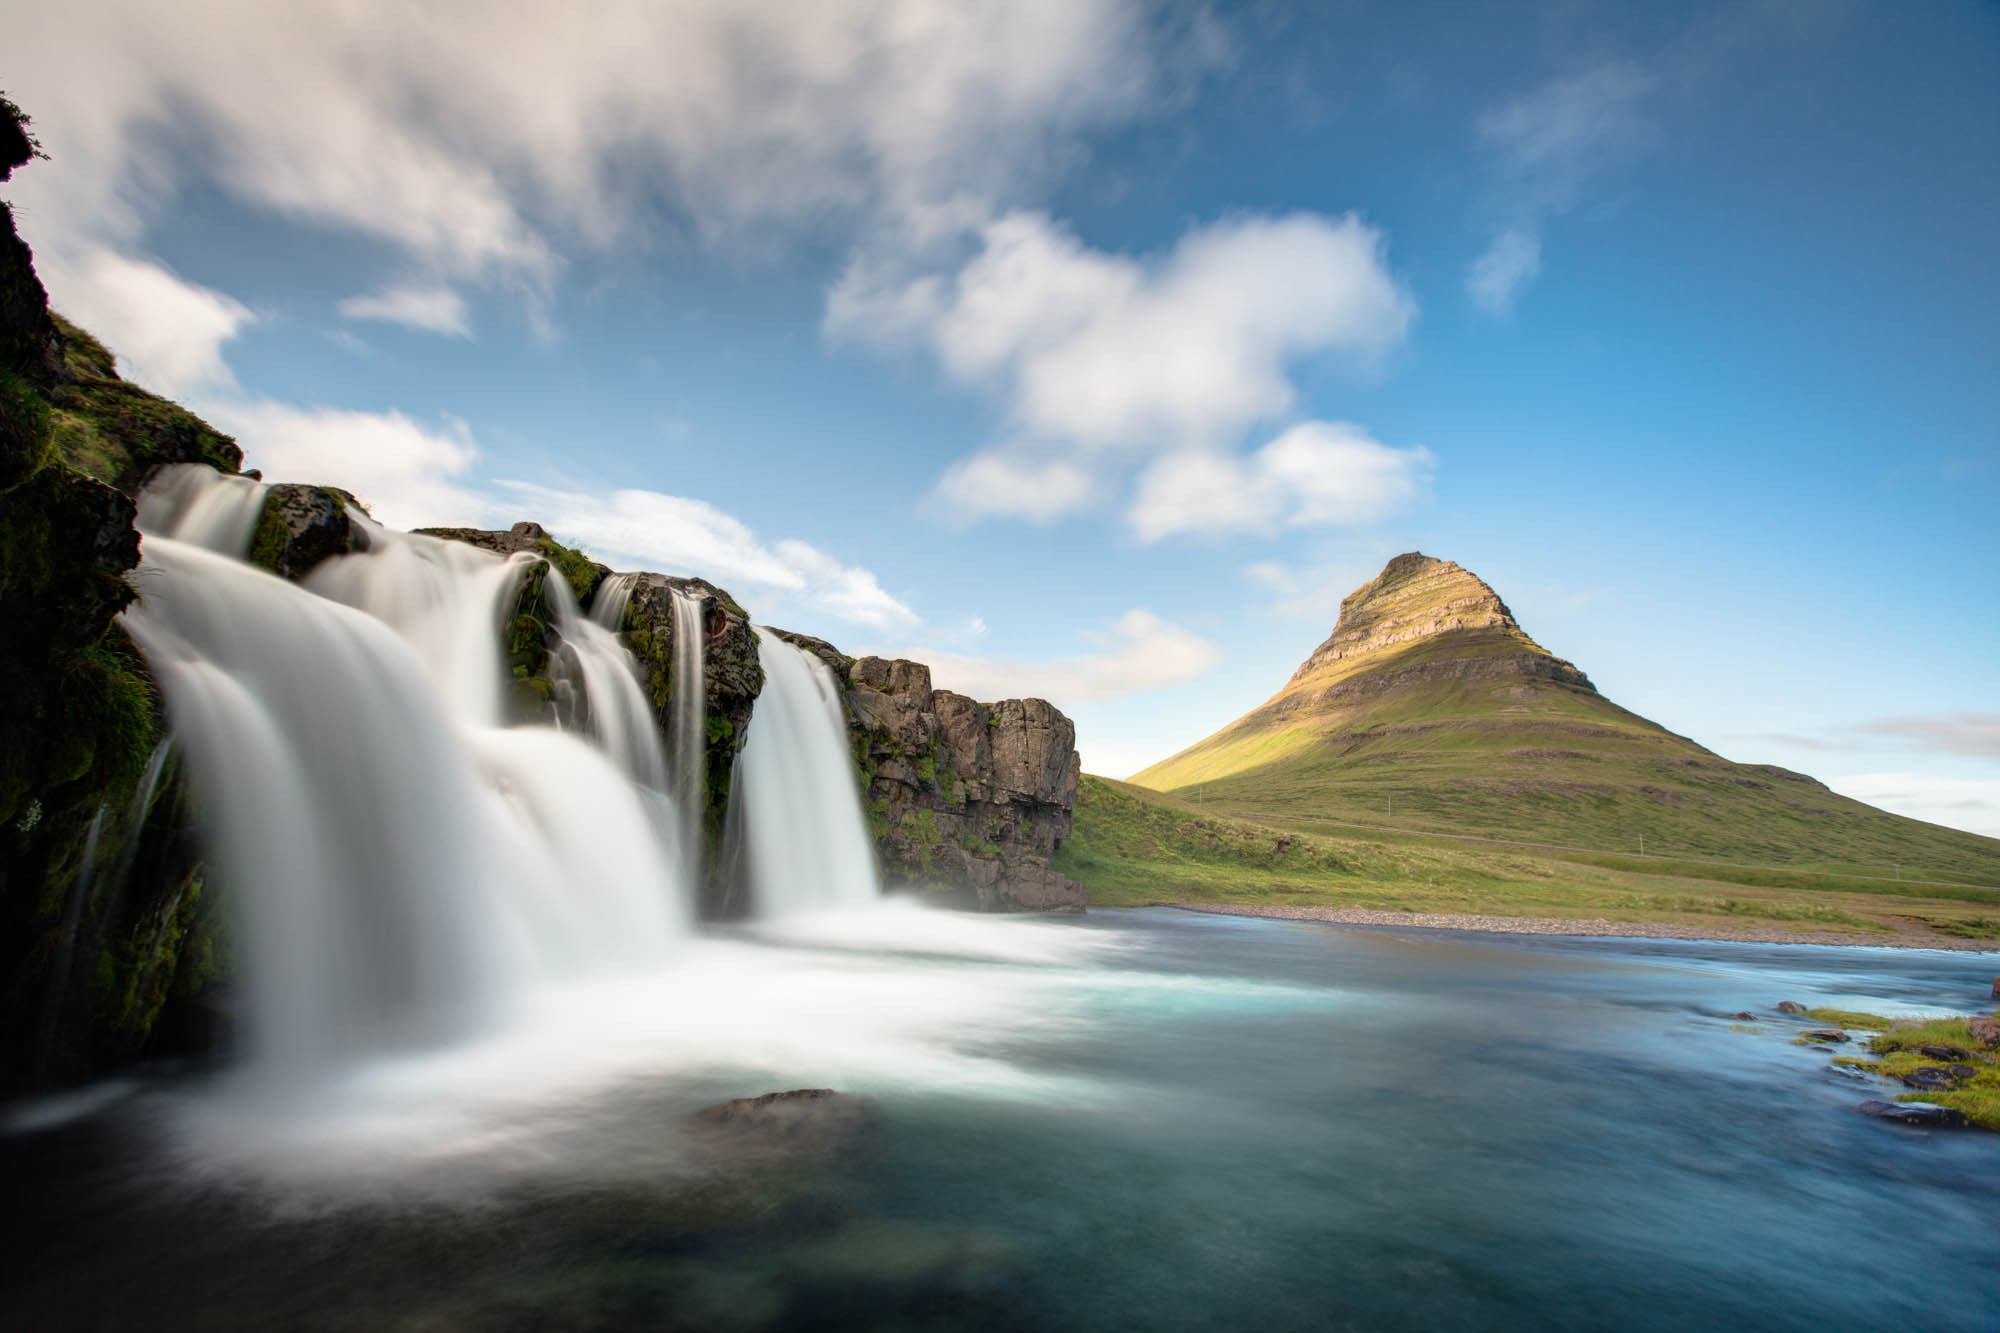 Photograph Iceland - Home of Nature #1 by Peter Teufl on 500px